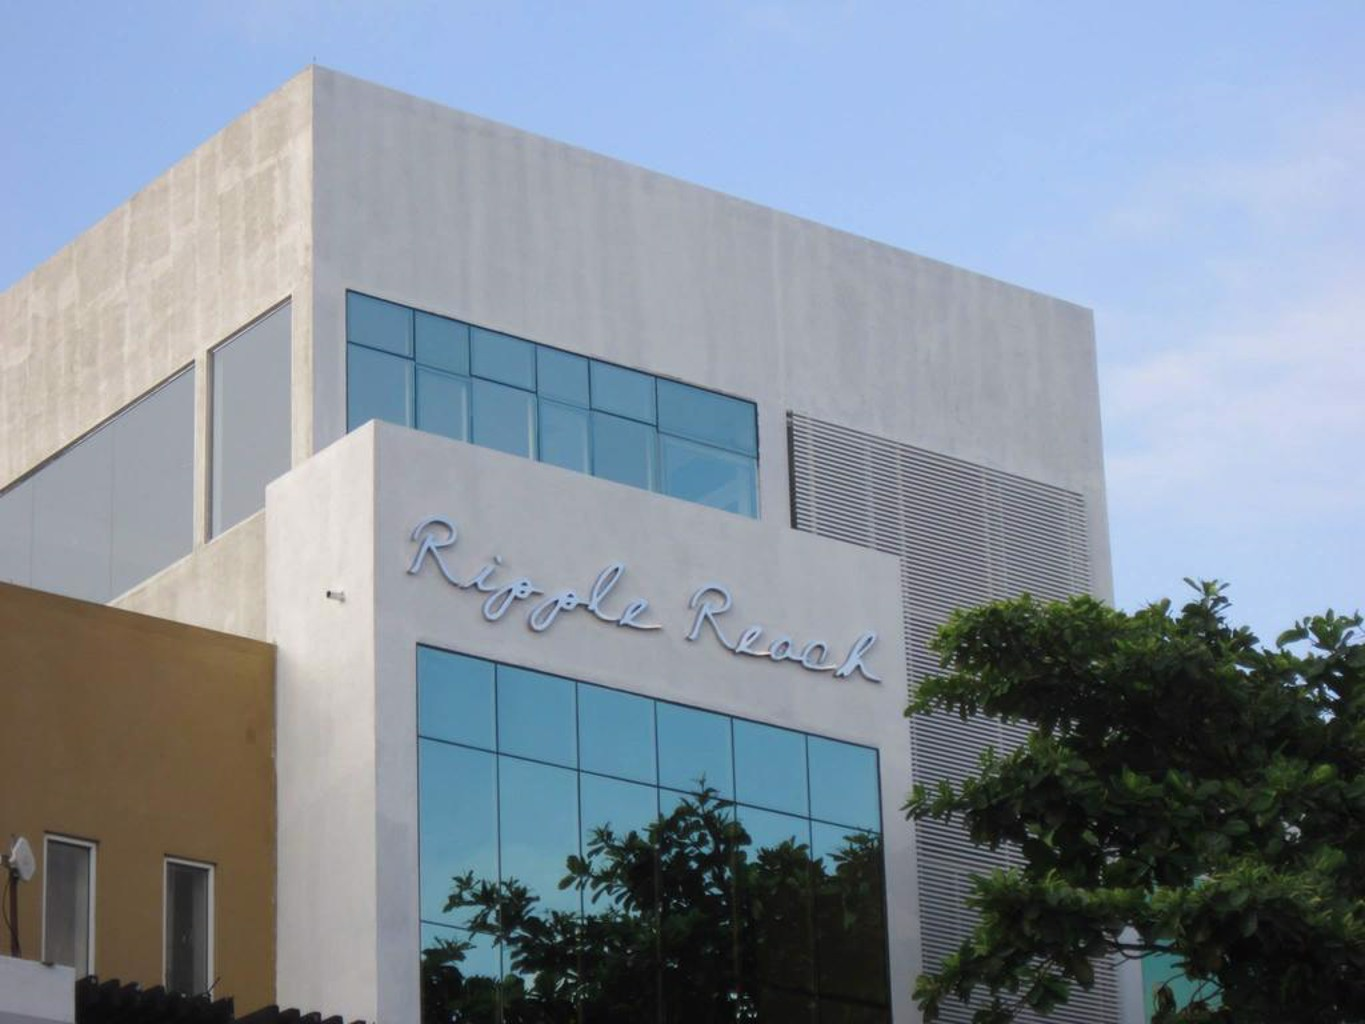 Ripple Reach Apartments